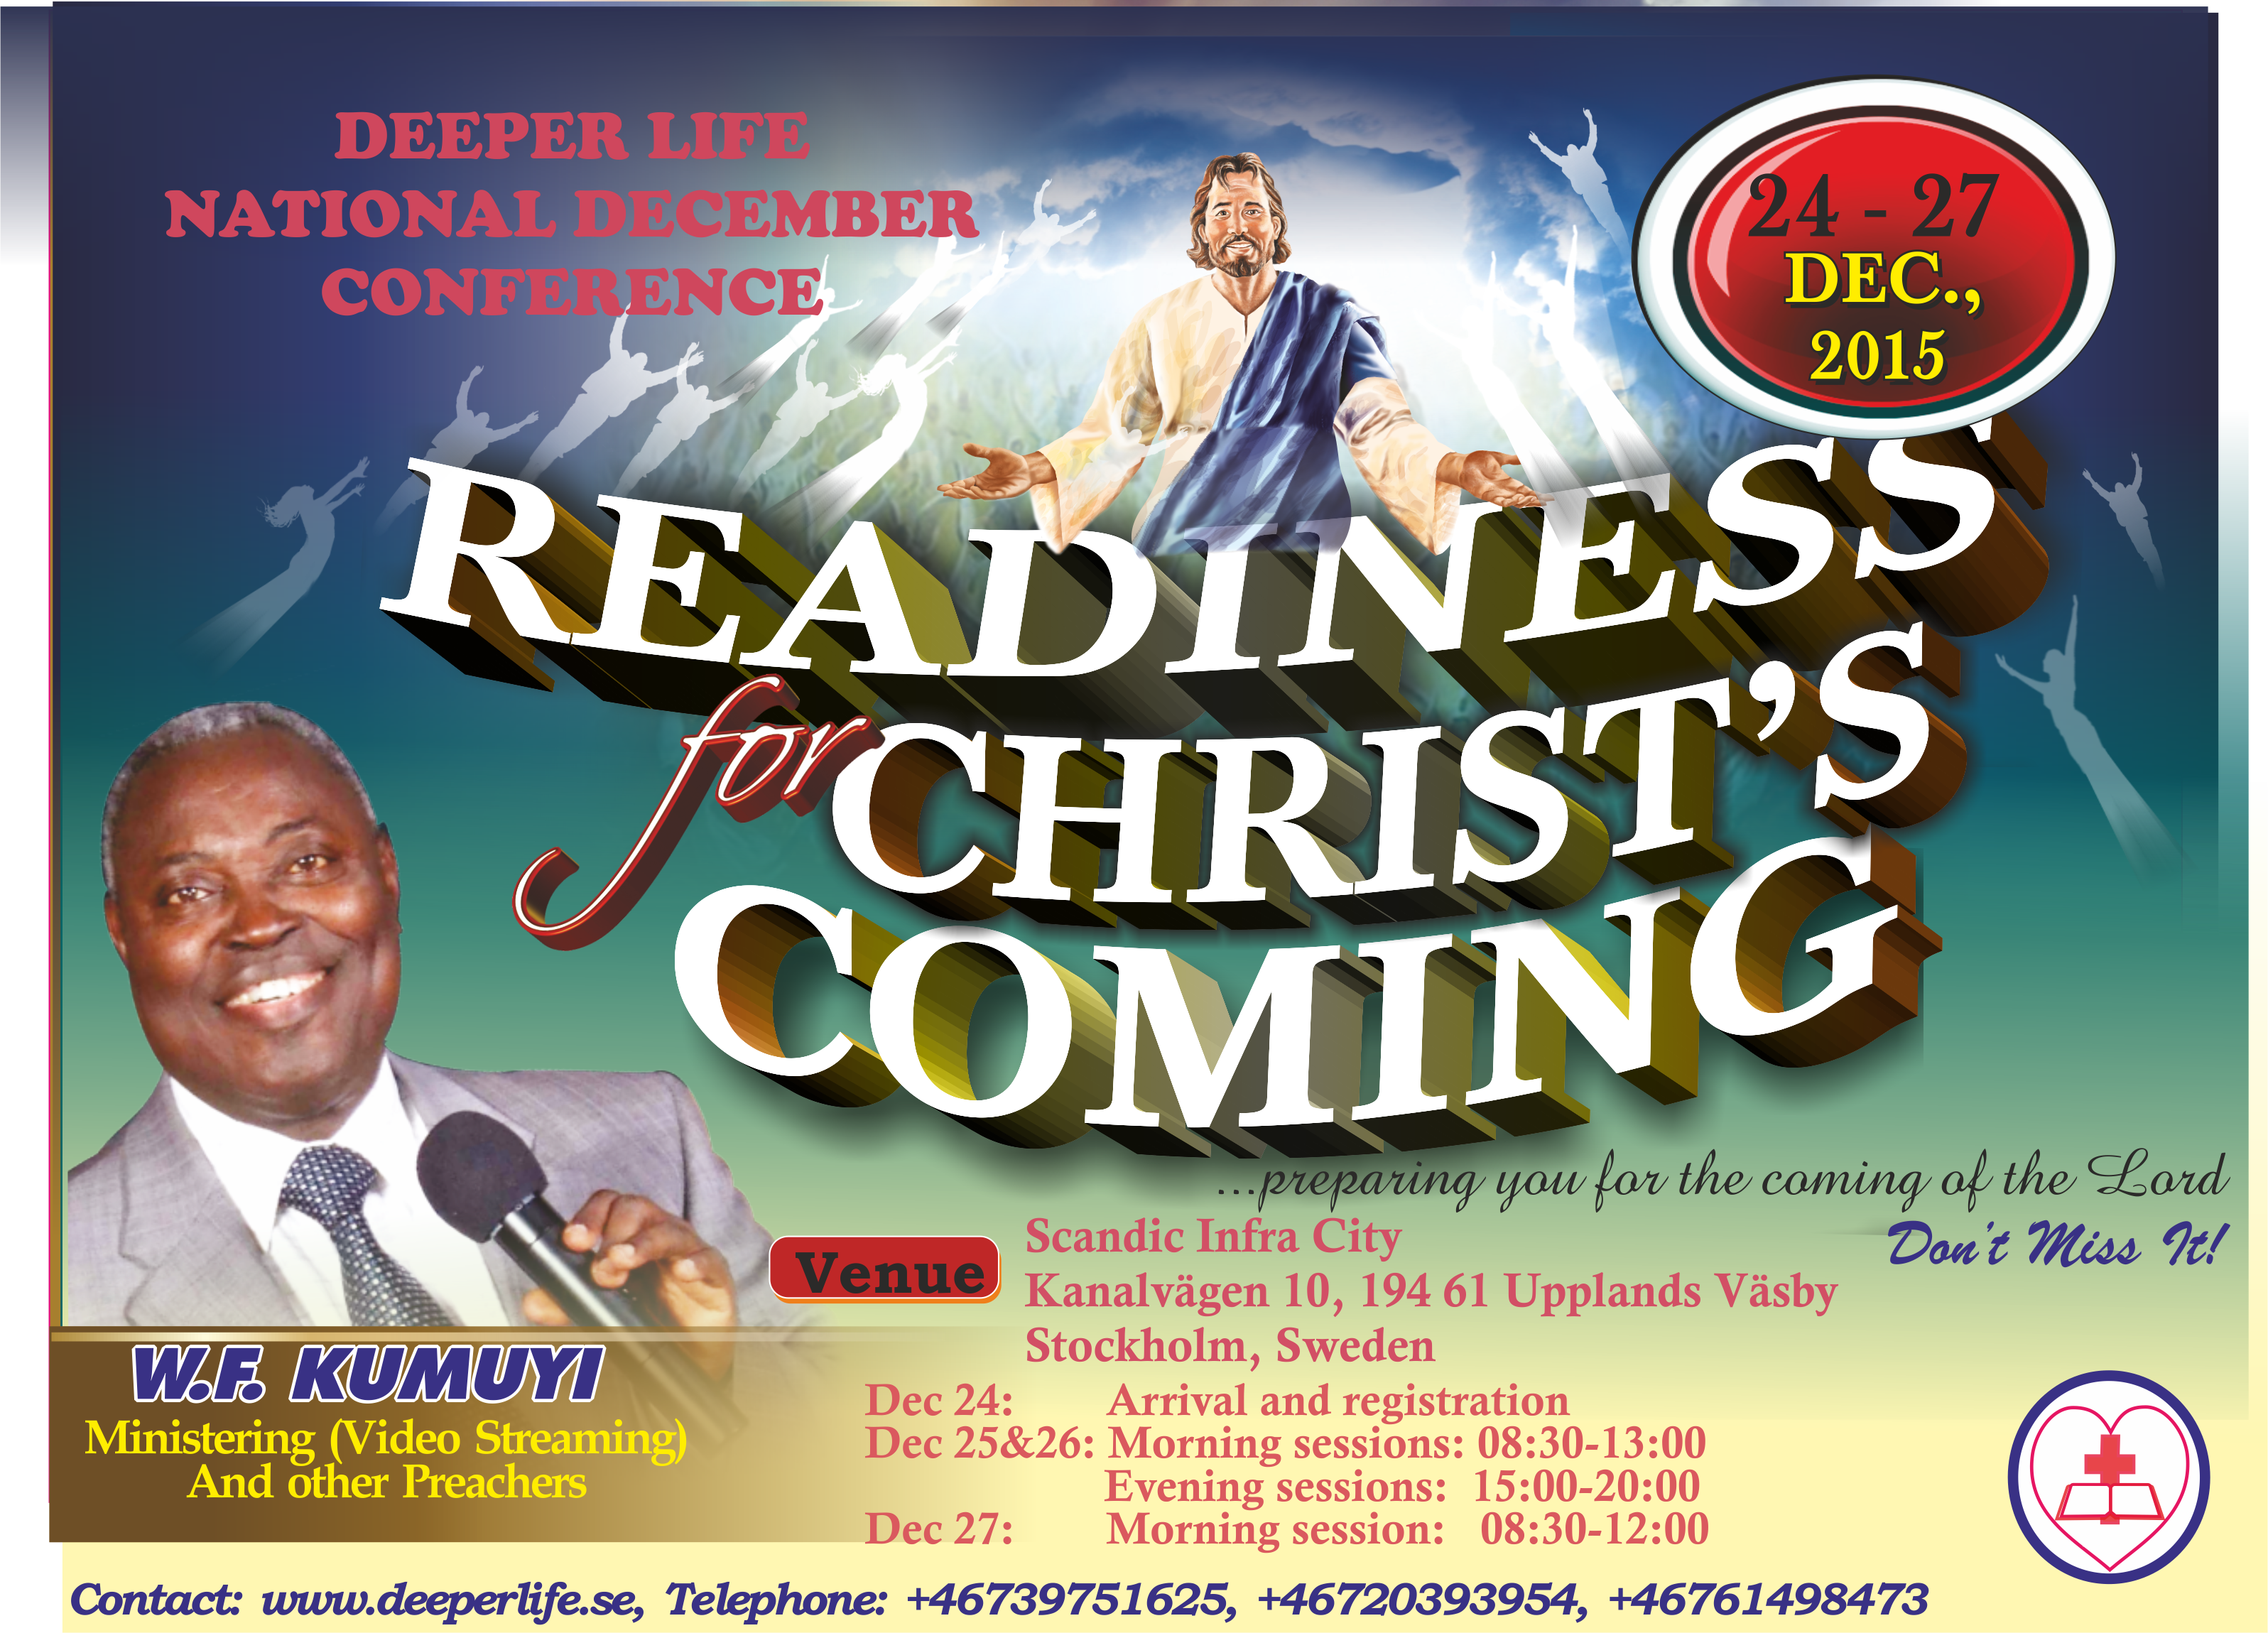 DEC. RETRT. 2015 Handbill